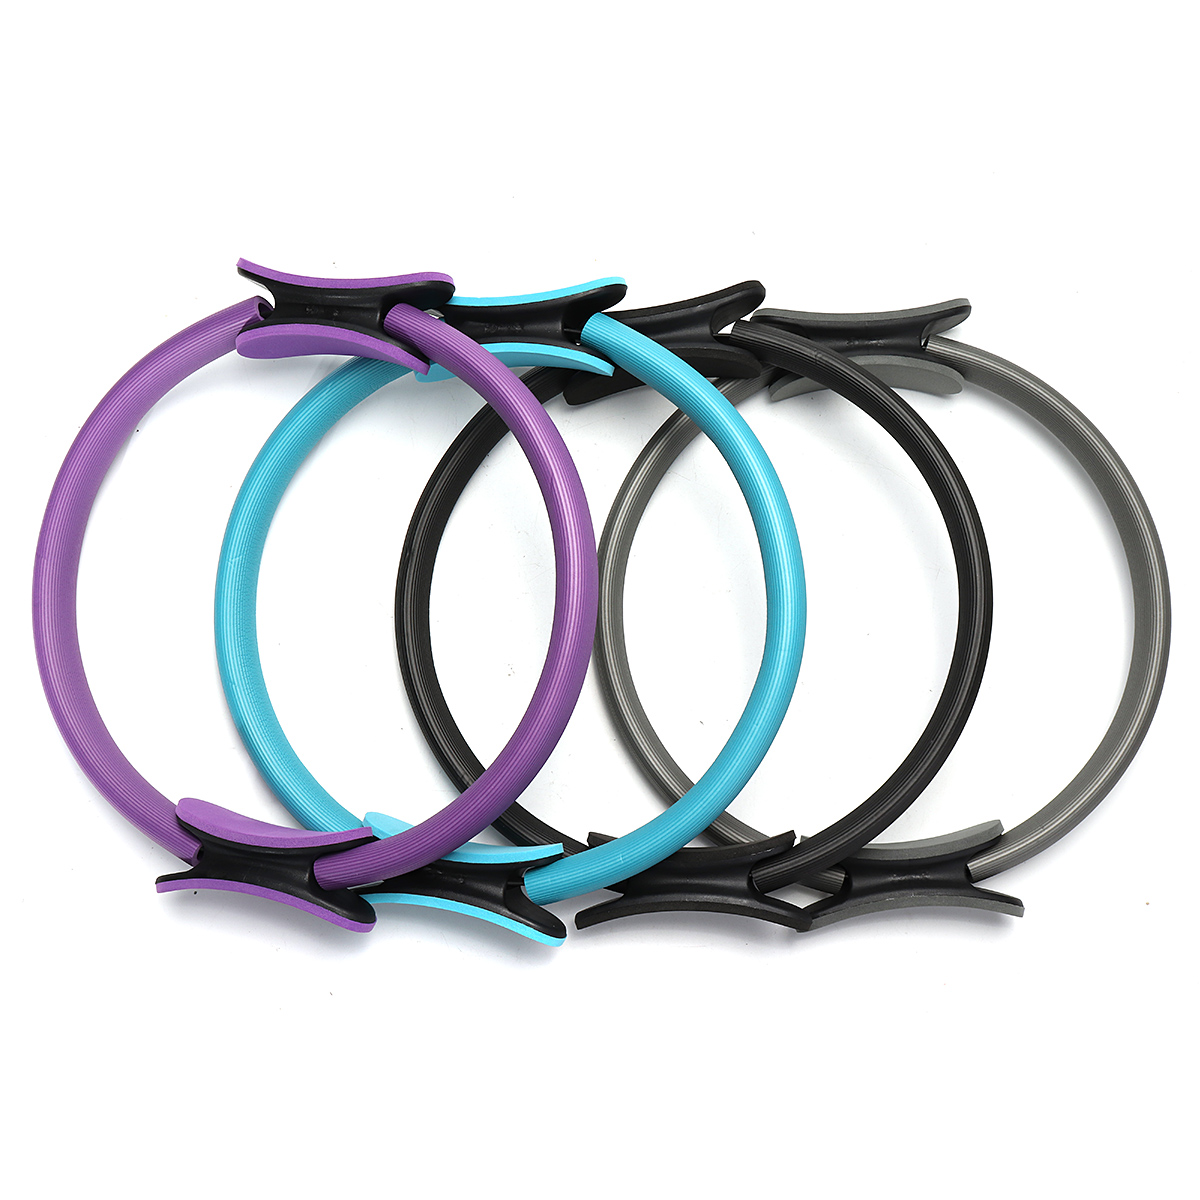 Dual Grip Pilates Ring Magic Circle Body Sport Exercise Fitness Weight Slimming Yoga Tool Body Building Training Yoga Circle